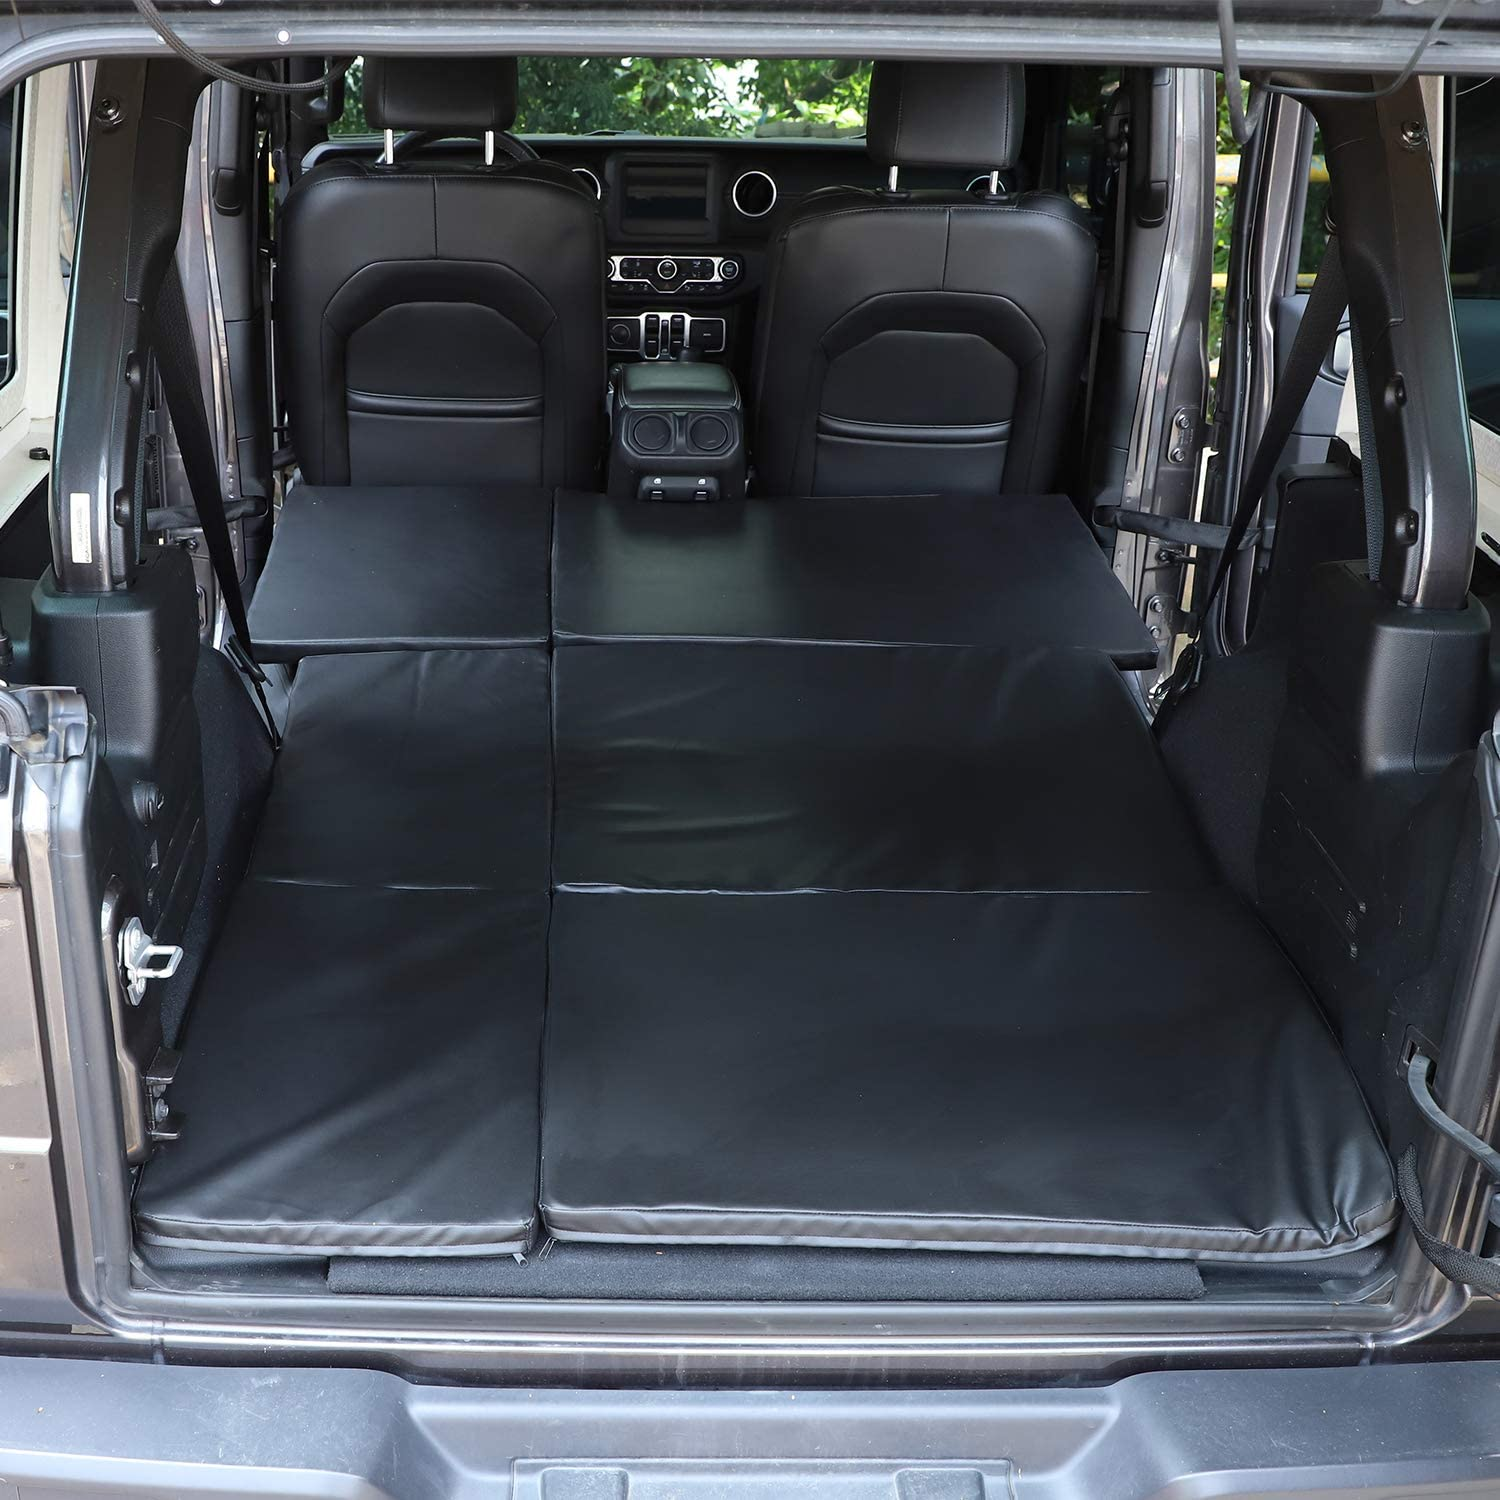 Folding Travel Camping Back Seat Bed Mattress for 2018-2020 Jeep Wrangler JL /& Unlimited 4 Door JeCar for Jeep Sleeping Pad Mat